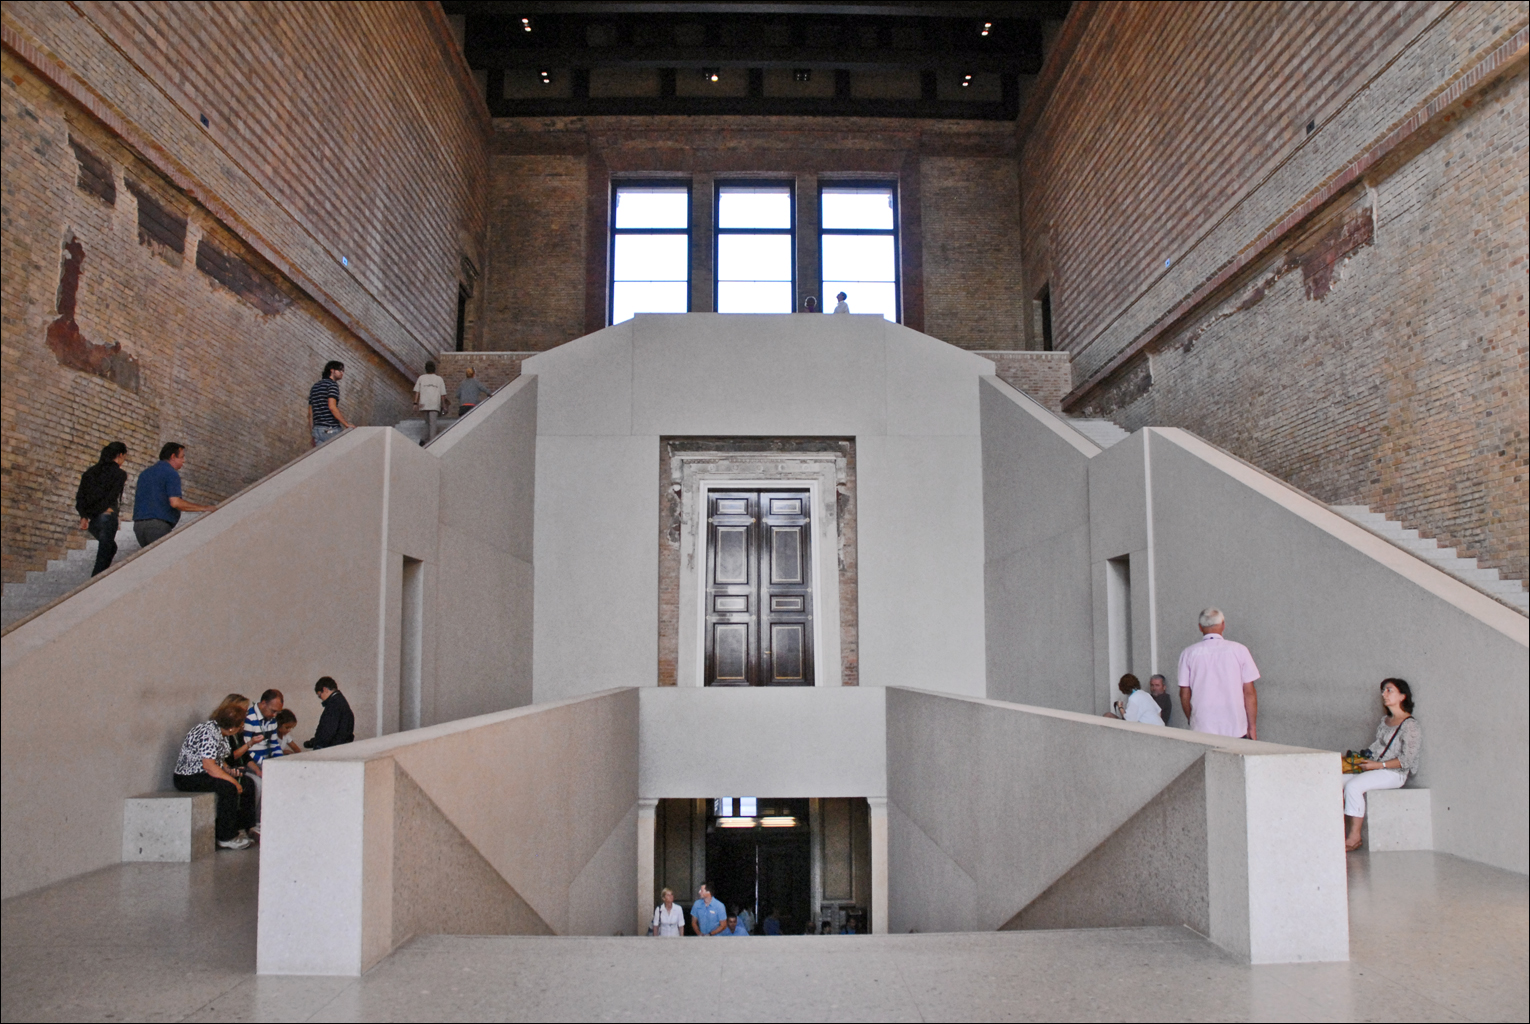 Neues Museum by David Chipperfield